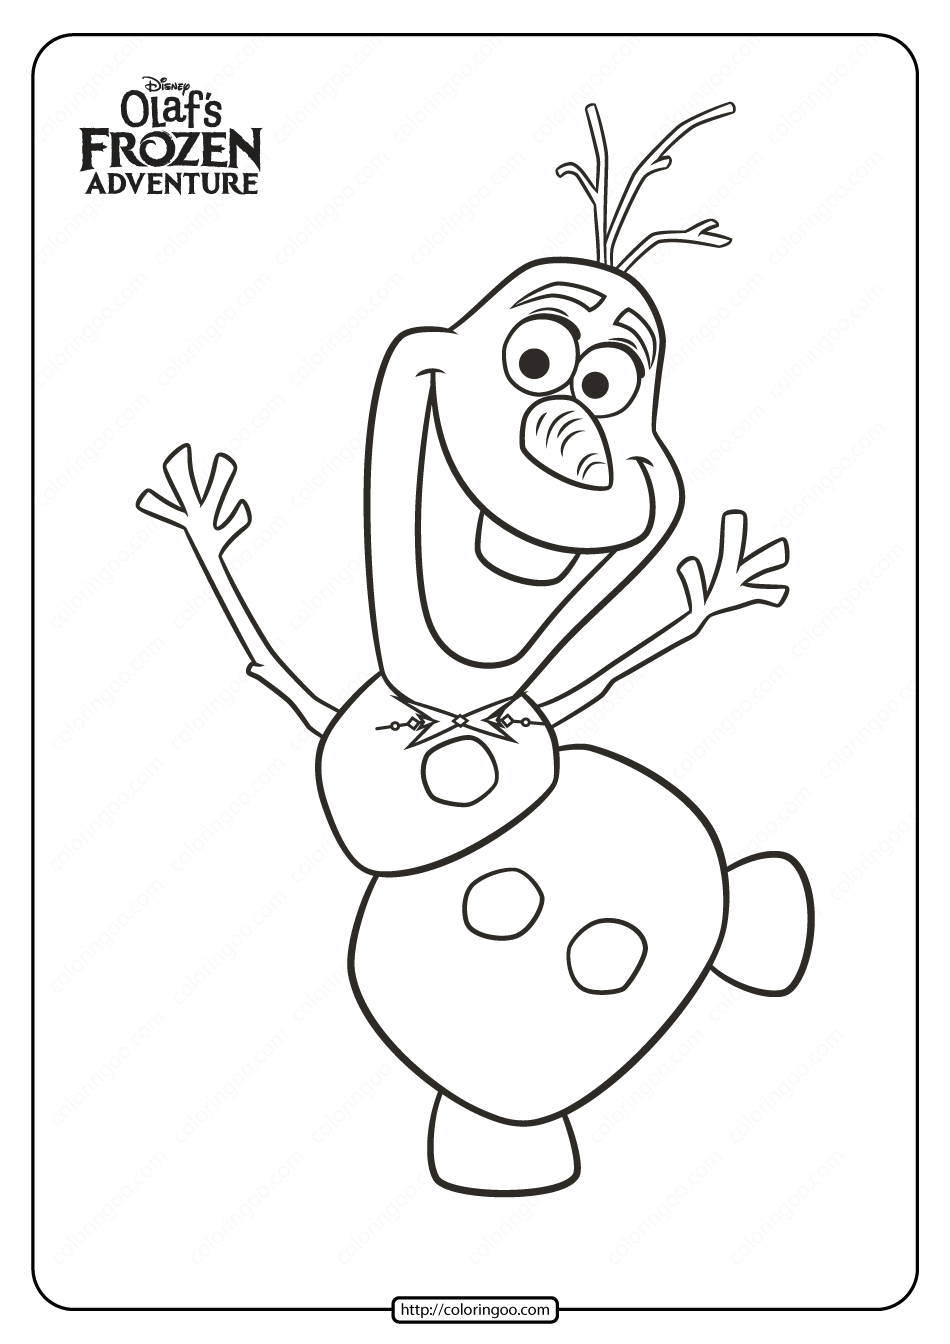 Disney Olaf S Frozen Adventure Coloring Pages 03 In 2020 Coloring Pages Elsa Coloring Pages Disney Olaf